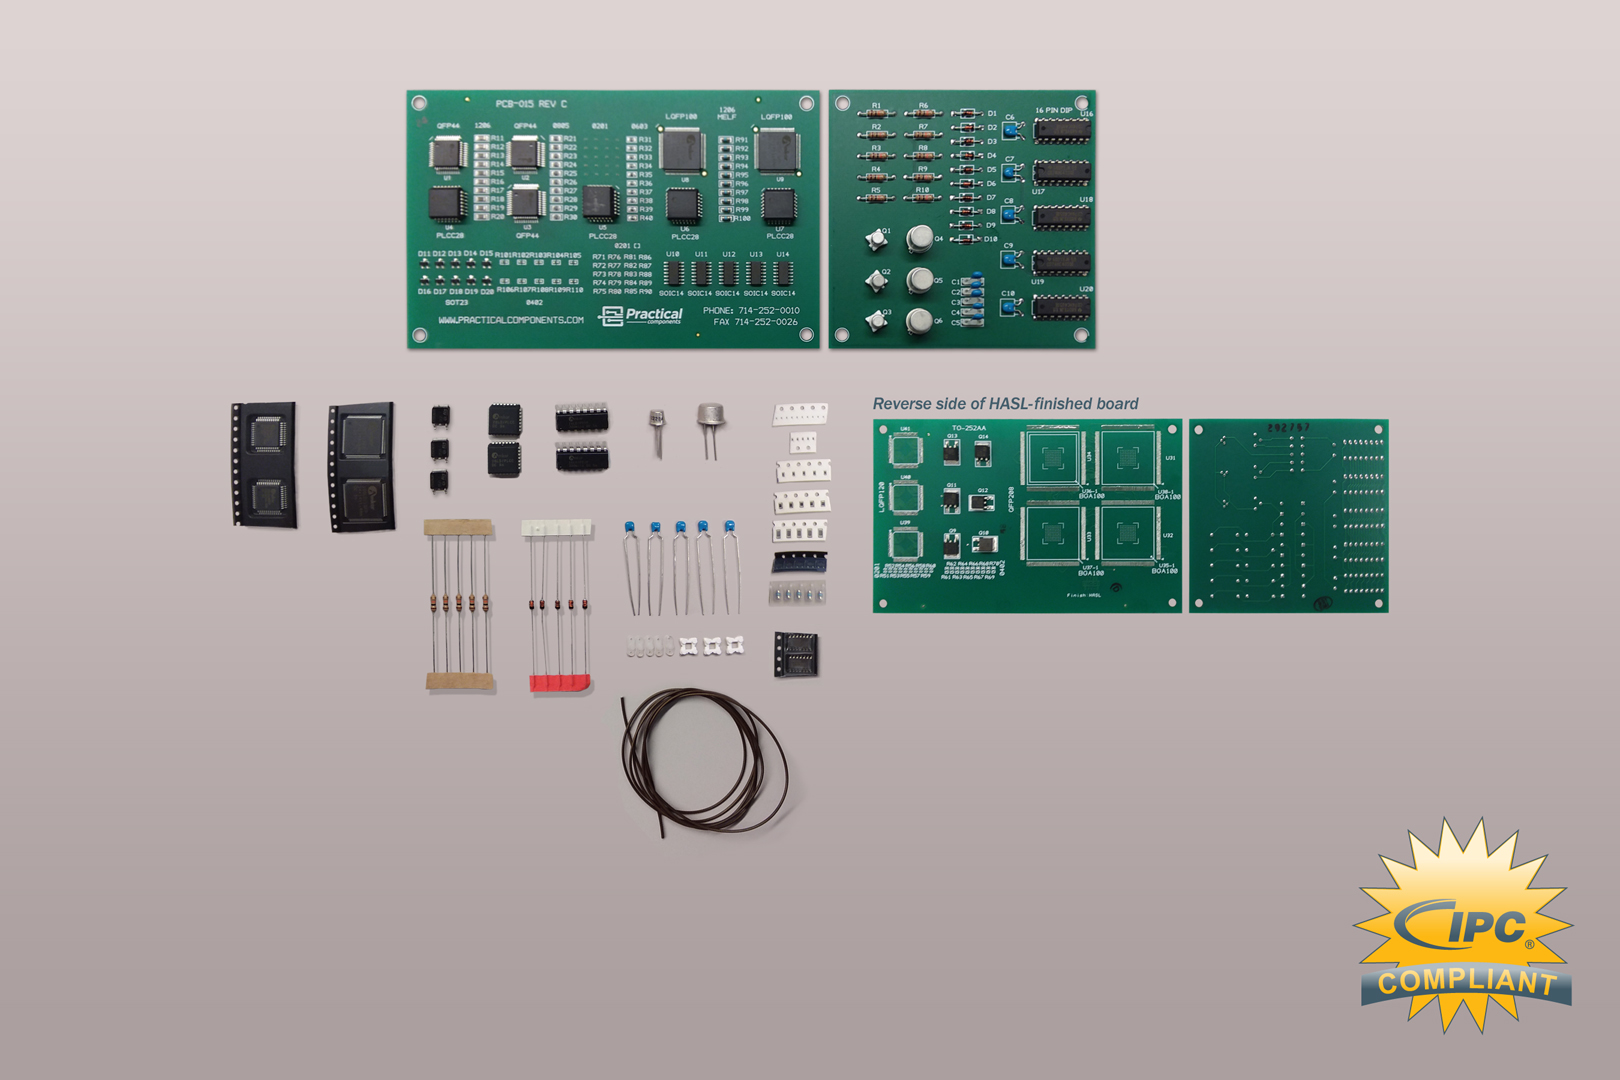 IPC 7711/7721 - CIS/CIT - Recertification Solder Training Kit (HASL)